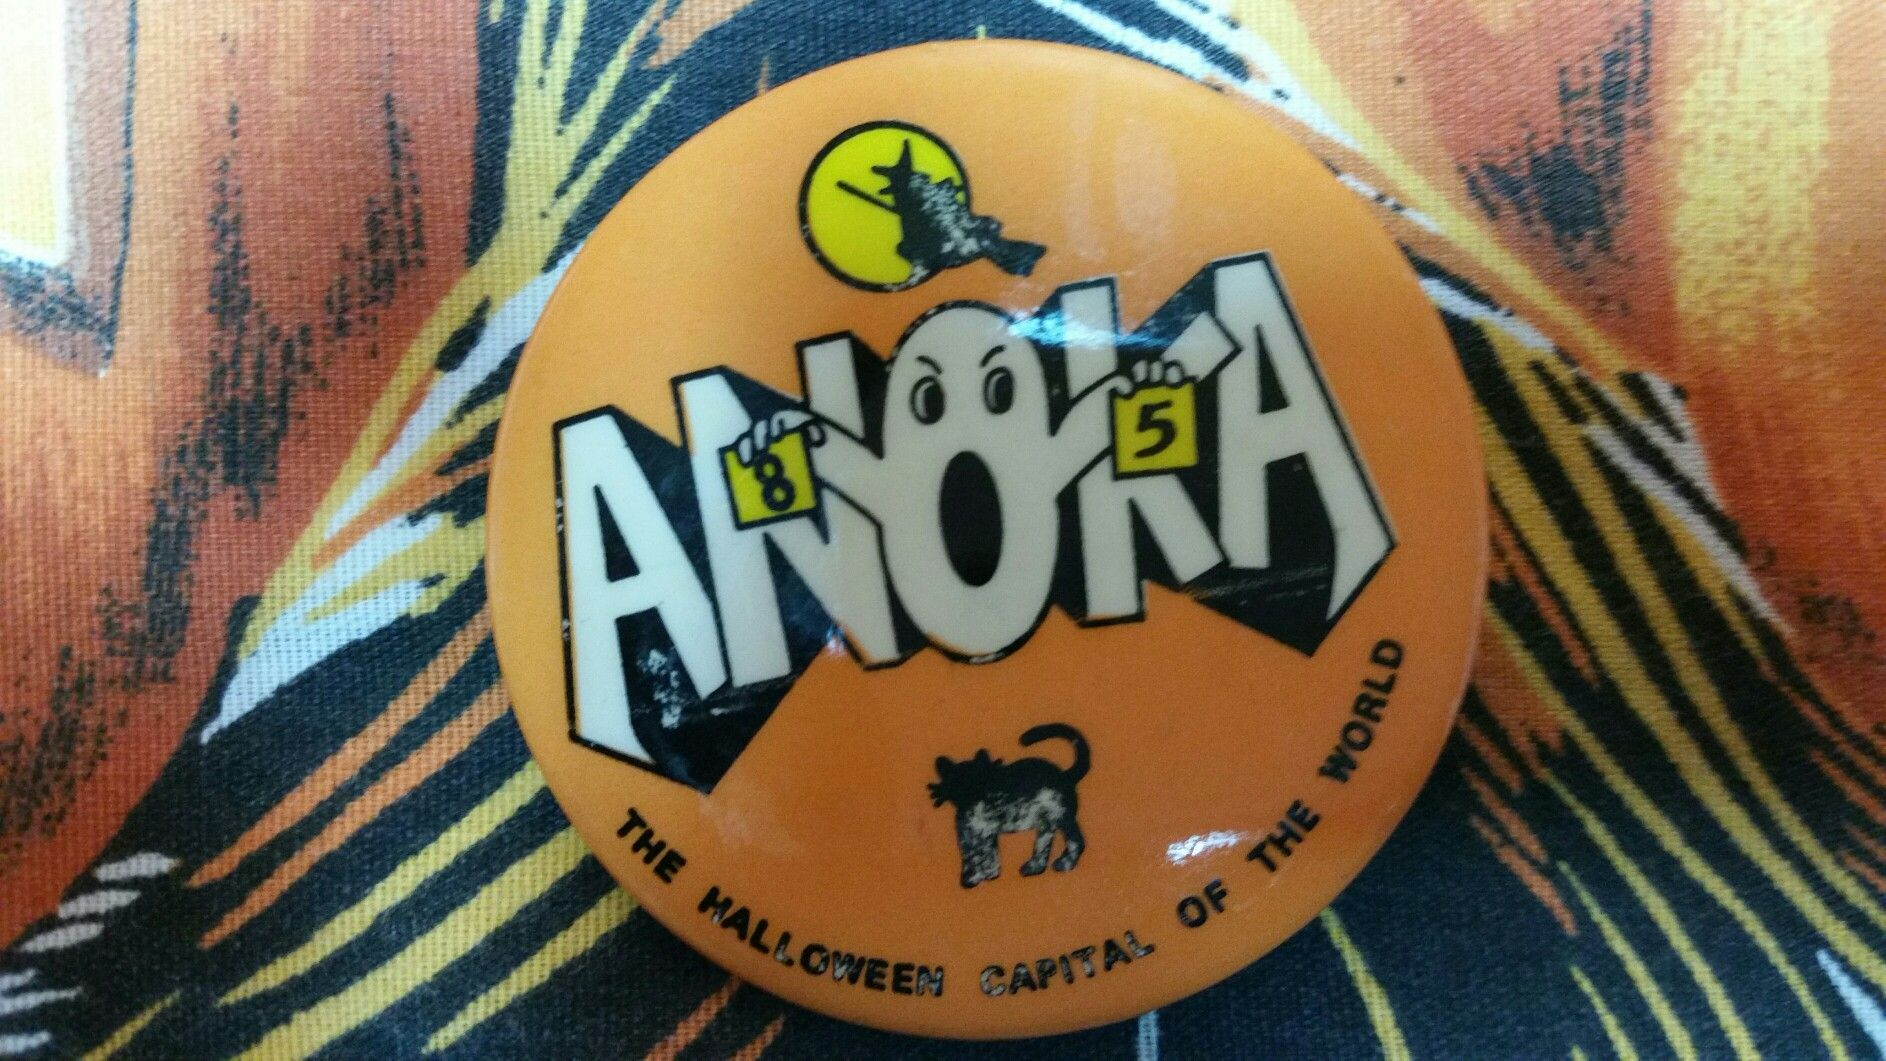 Anoka Halloween capital of the world button 1985 Anoka